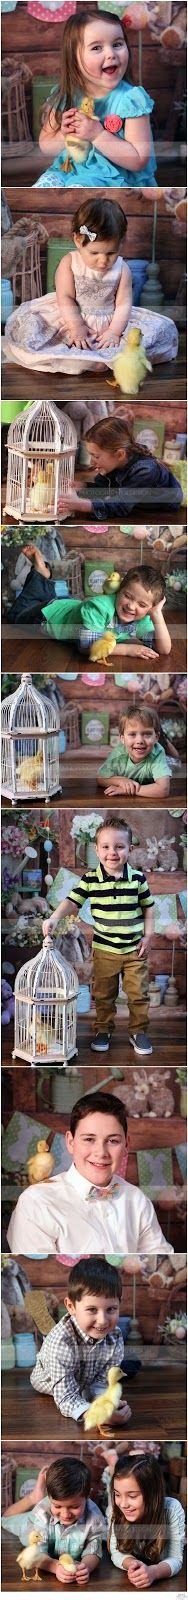 Jenni Kenney Photography, LLC Easter mini sessions, kiddos, ducklings